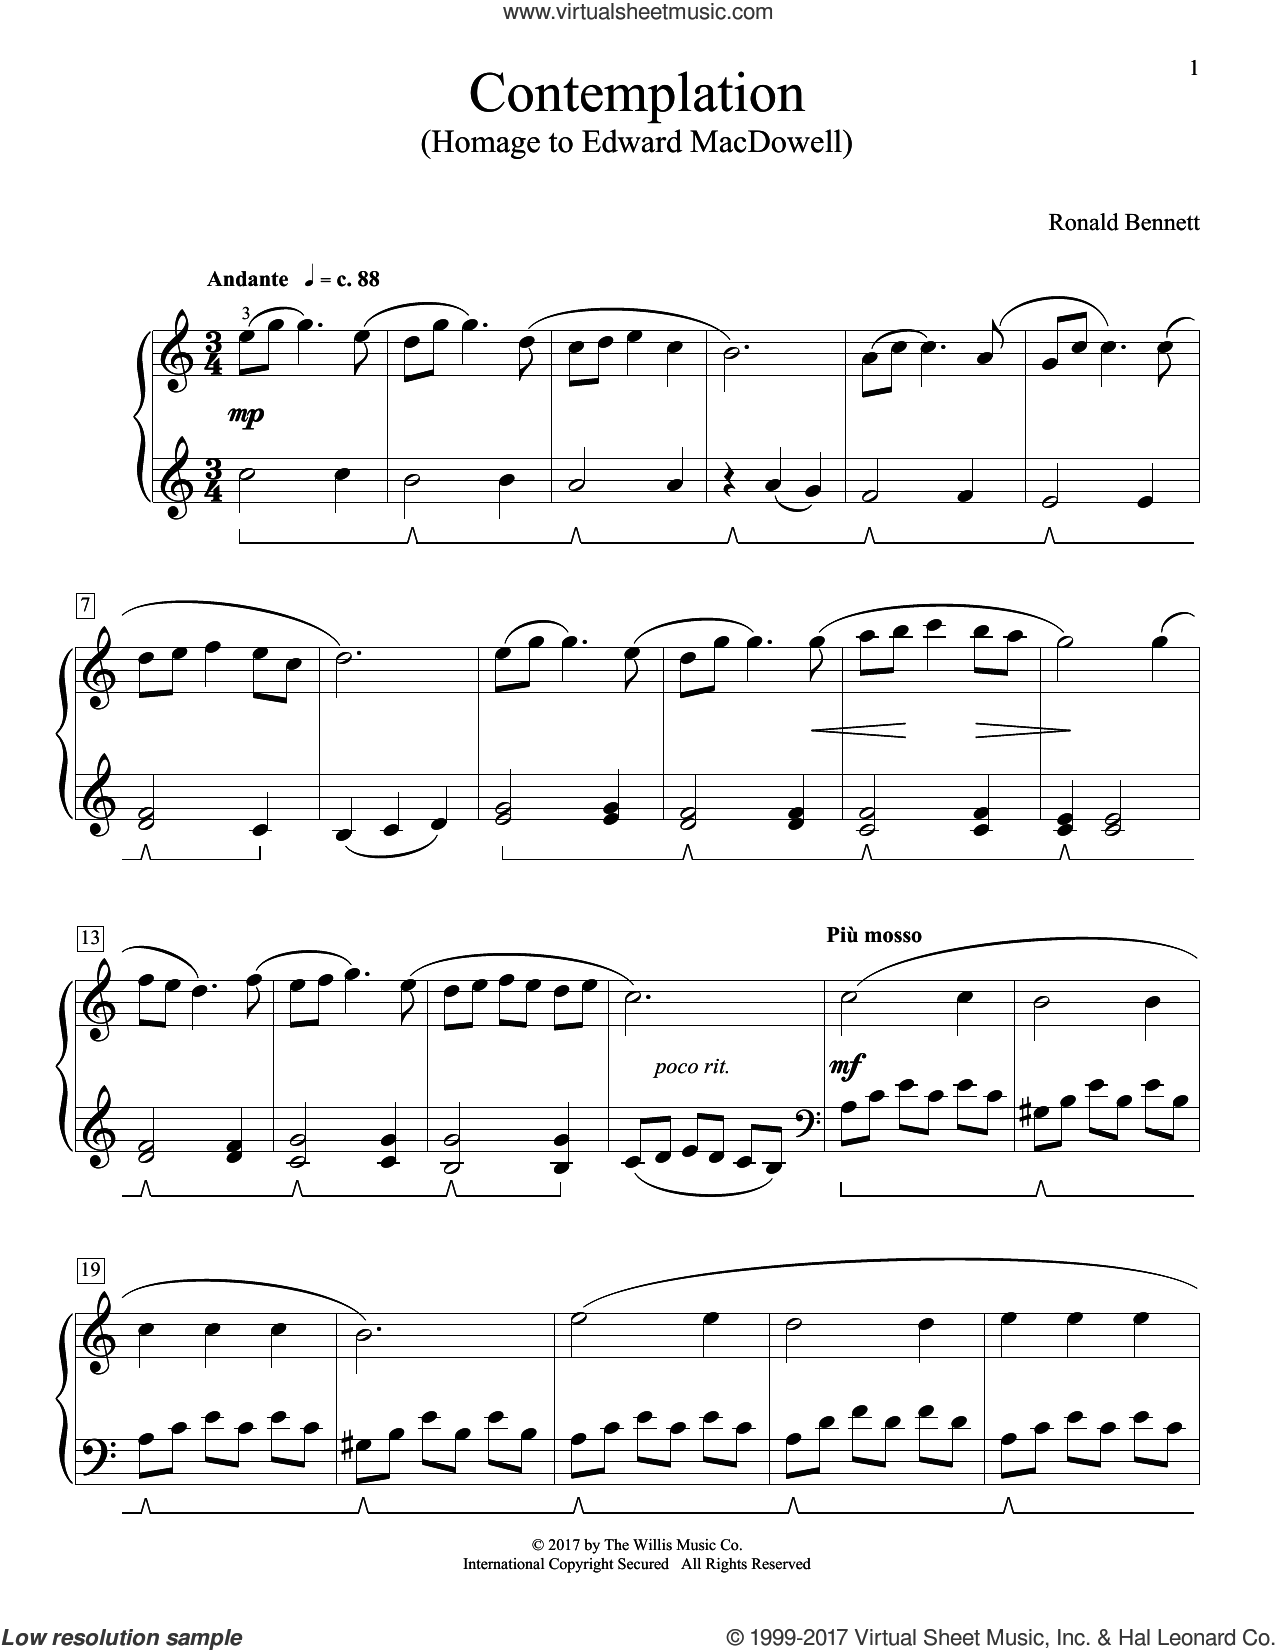 Contemplation (Homage To Edward MacDowell) sheet music for piano solo (elementary) by Ronald Bennett. Score Image Preview.